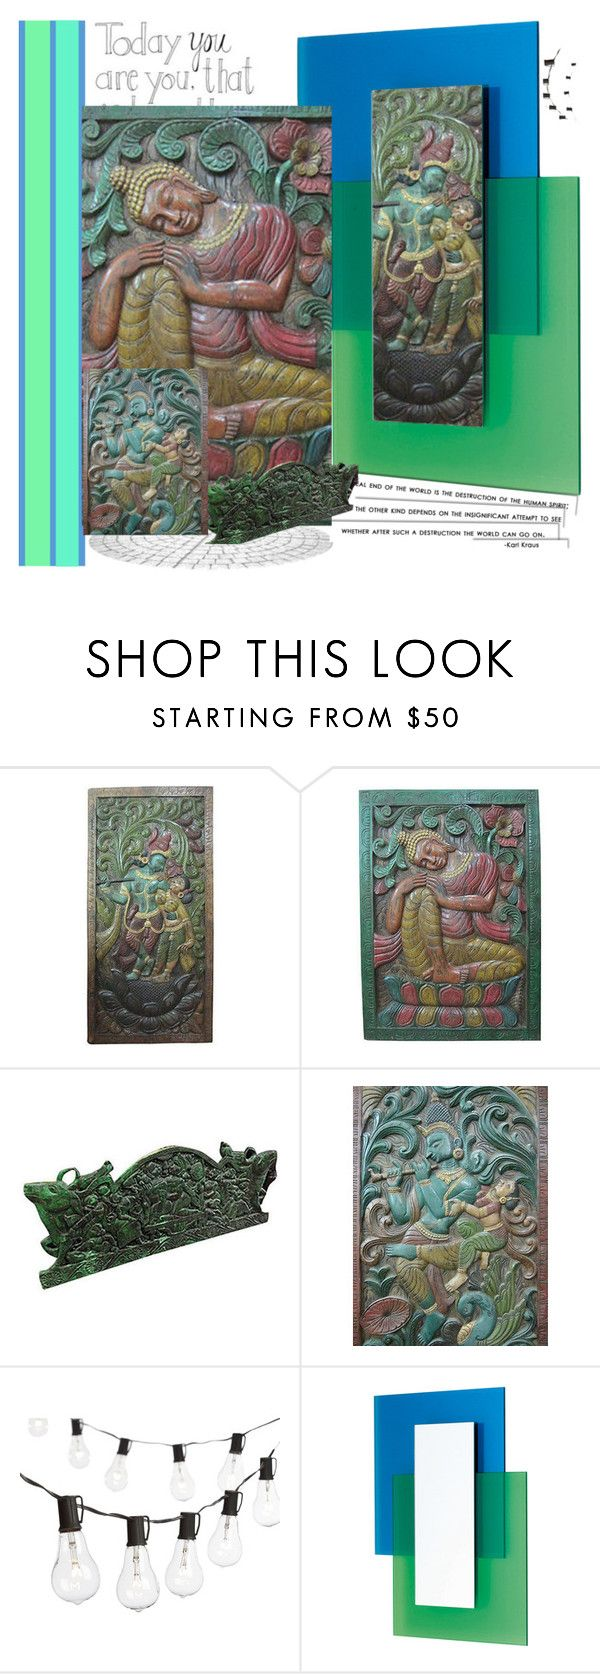 Antique Wall Panels by baydeals on Polyvore featuring interior, interiors, interior design, home, home decor, interior decorating, Crate and Barrel, Glas Italia and vintage  http://stores.ebay.com/mogulgallery/CARVED-DOORS-/_i.html?_fsub=353415319&_sid=3781319&_trksid=p4634.c0.m322